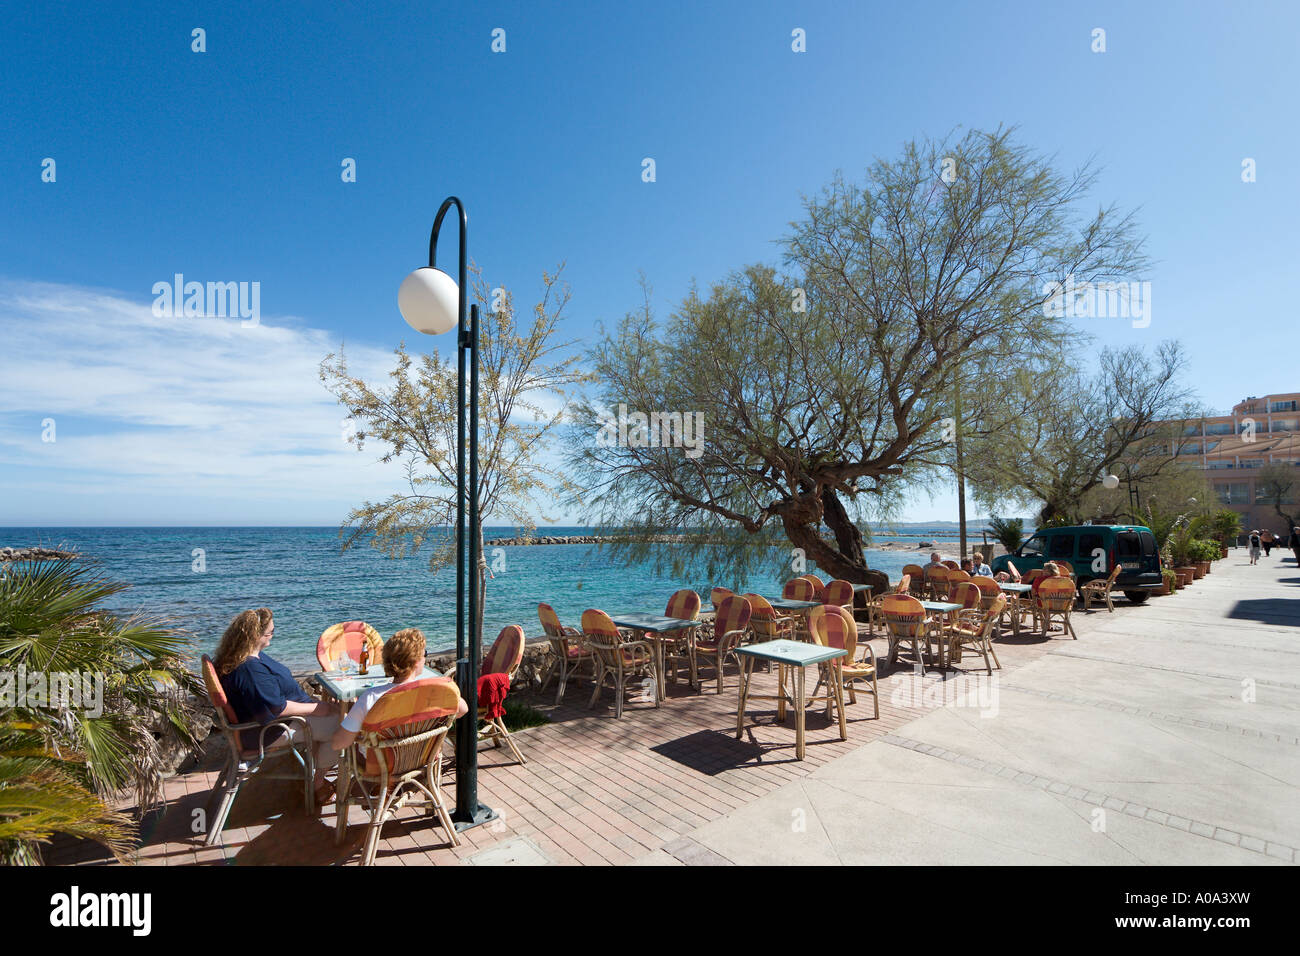 Seafront Cafe,  Cala Bona,  Mallorca, Balearic Islands. Spain - Stock Image